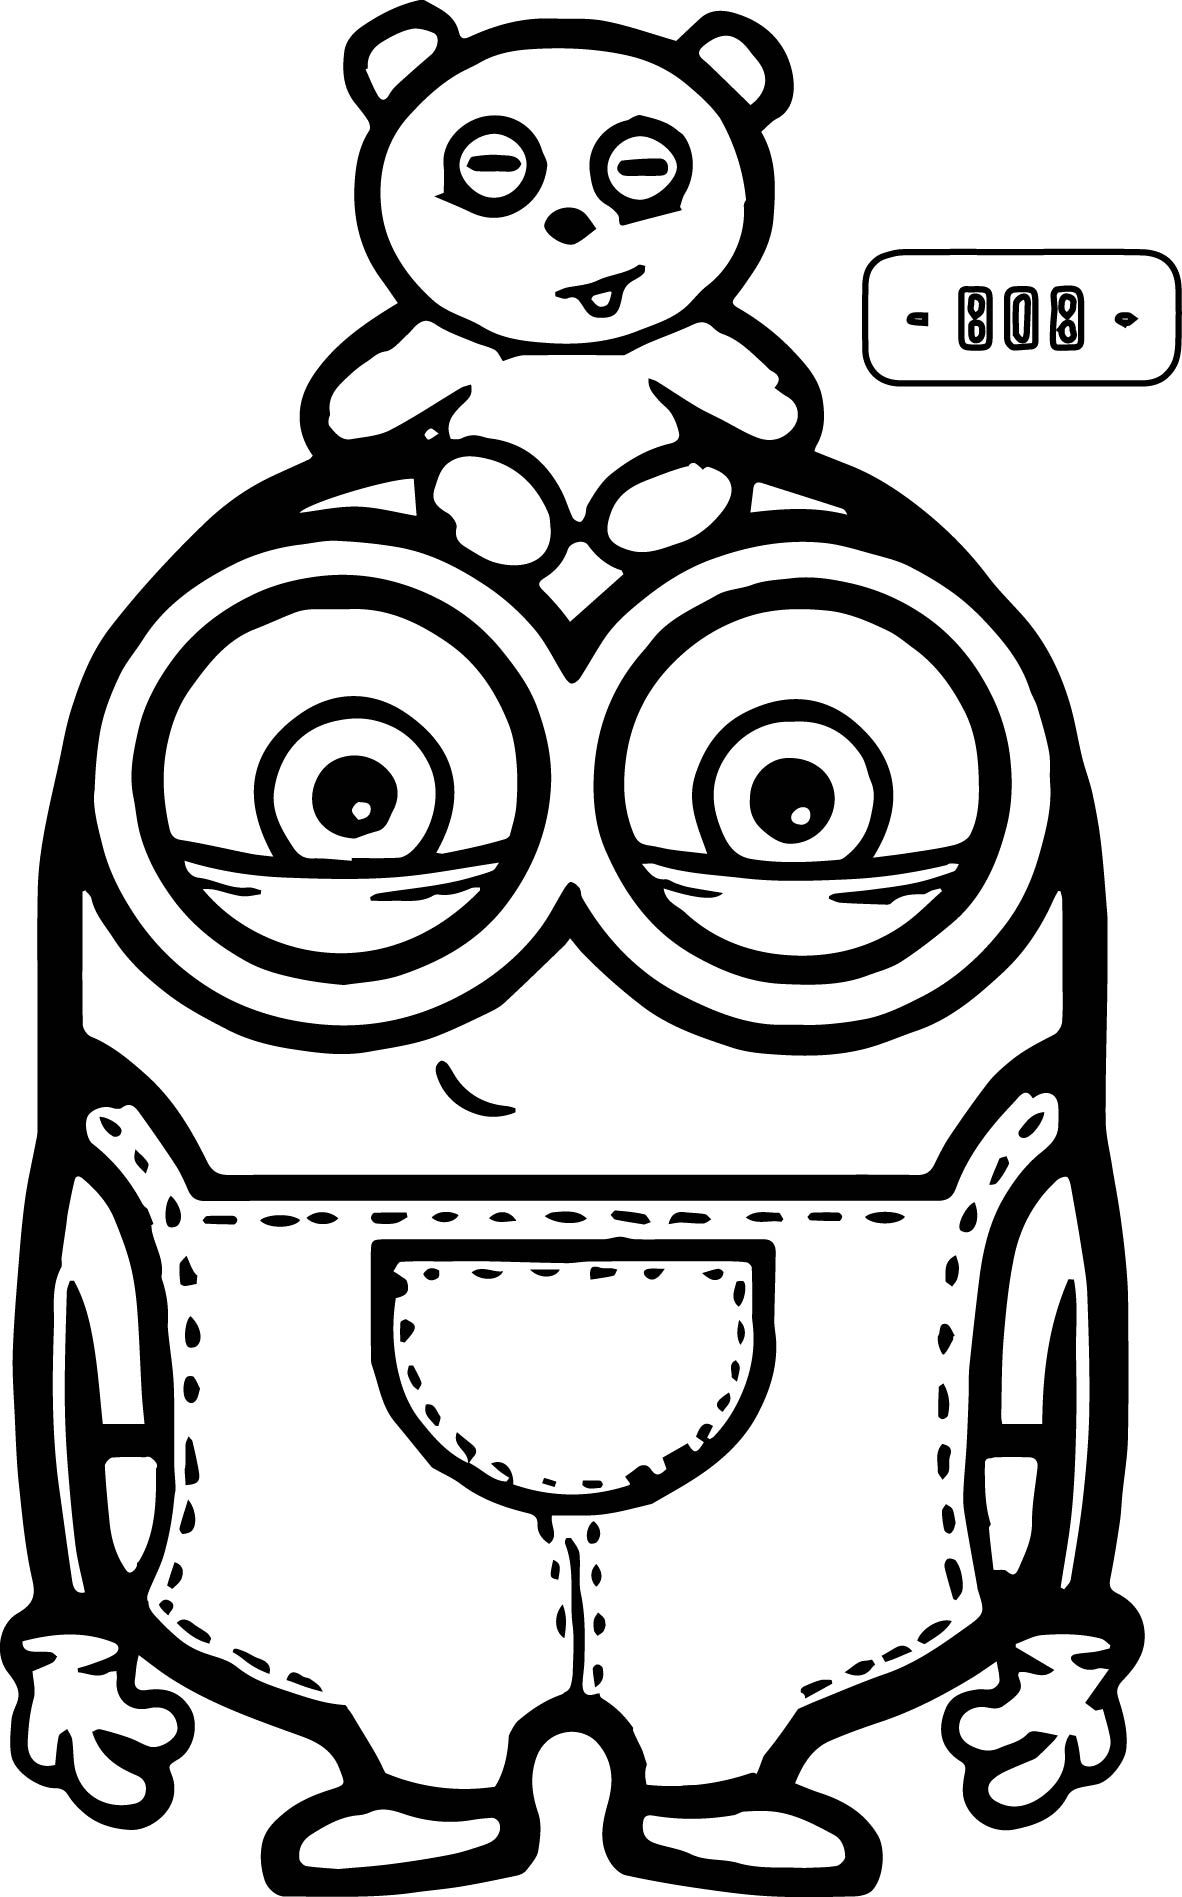 Cute Bob And Bear Minions Coloring Page | Coloring/ worksheets ...